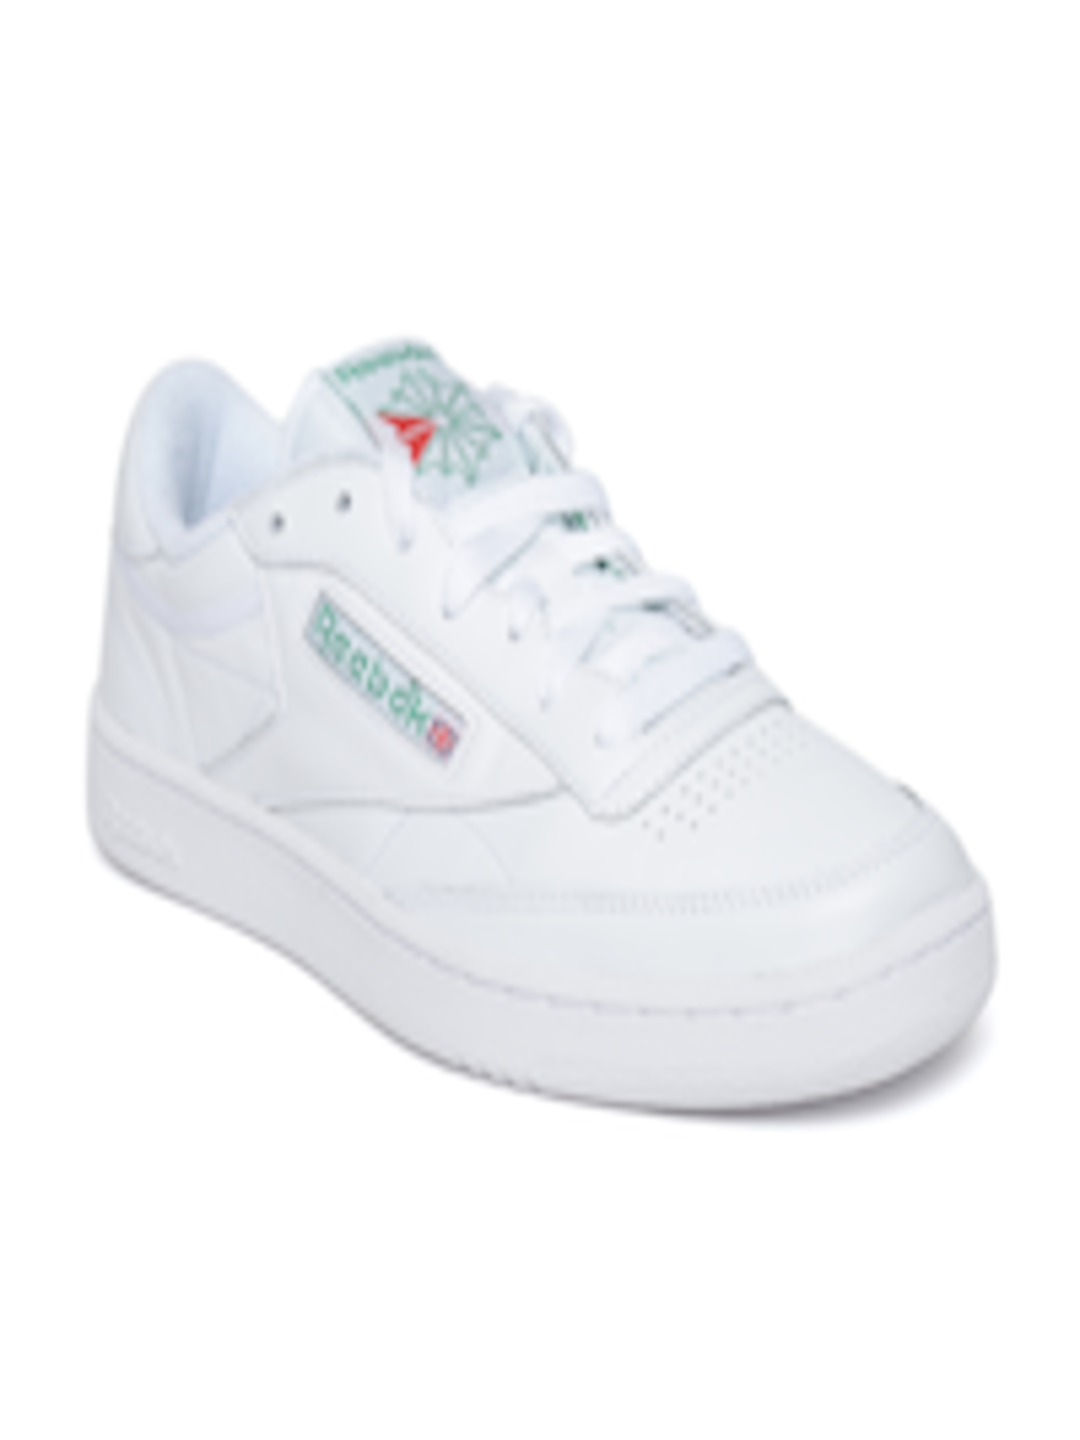 4b271ec090254 Buy Reebok Classic Men White Club C 85 Archive Leather Sneakers - Casual  Shoes for Men 2496293